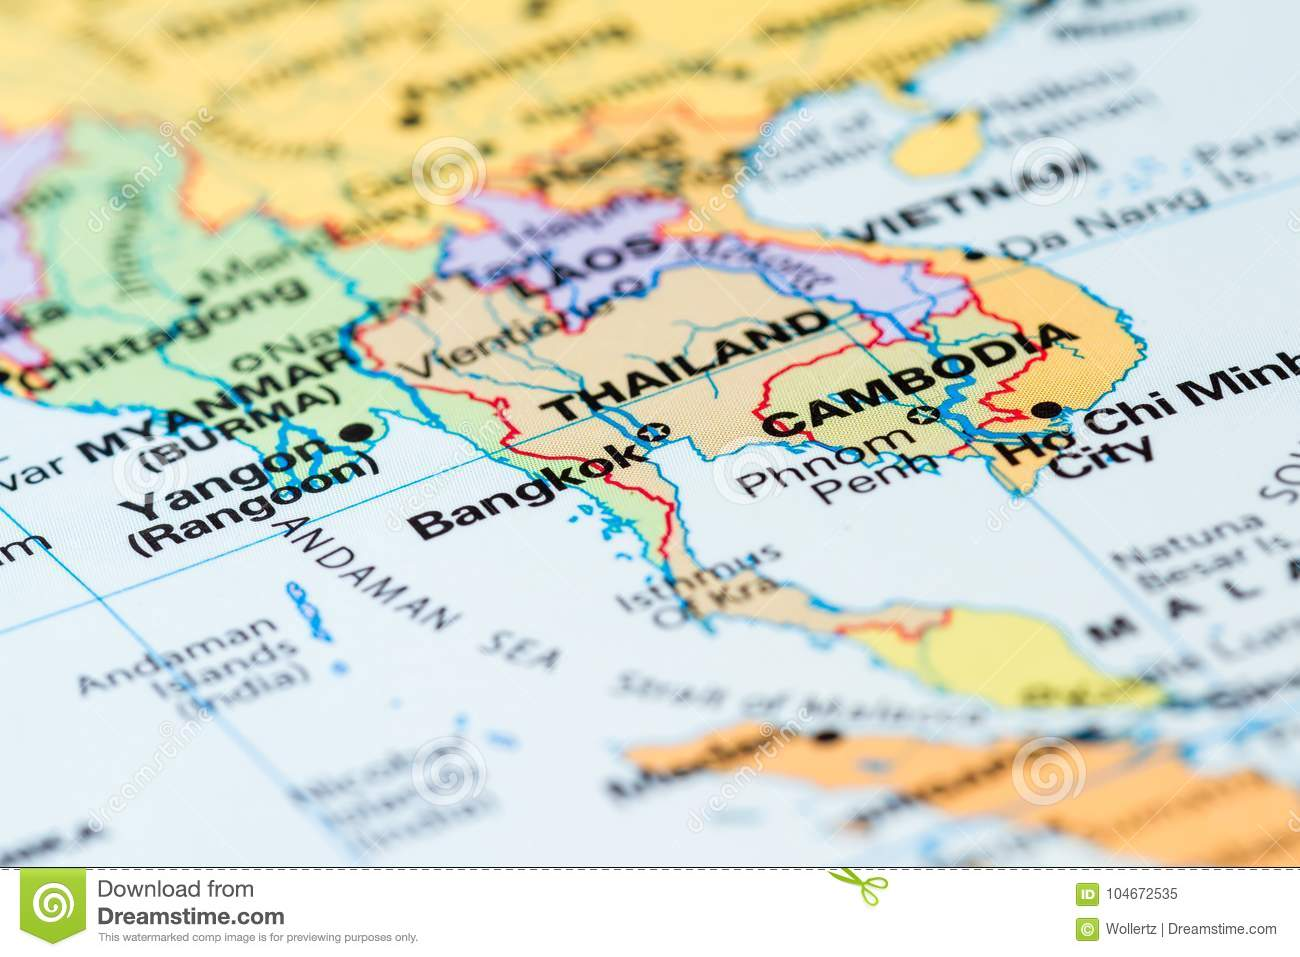 Thailand on a map stock image. Image of detail, region - 104672535